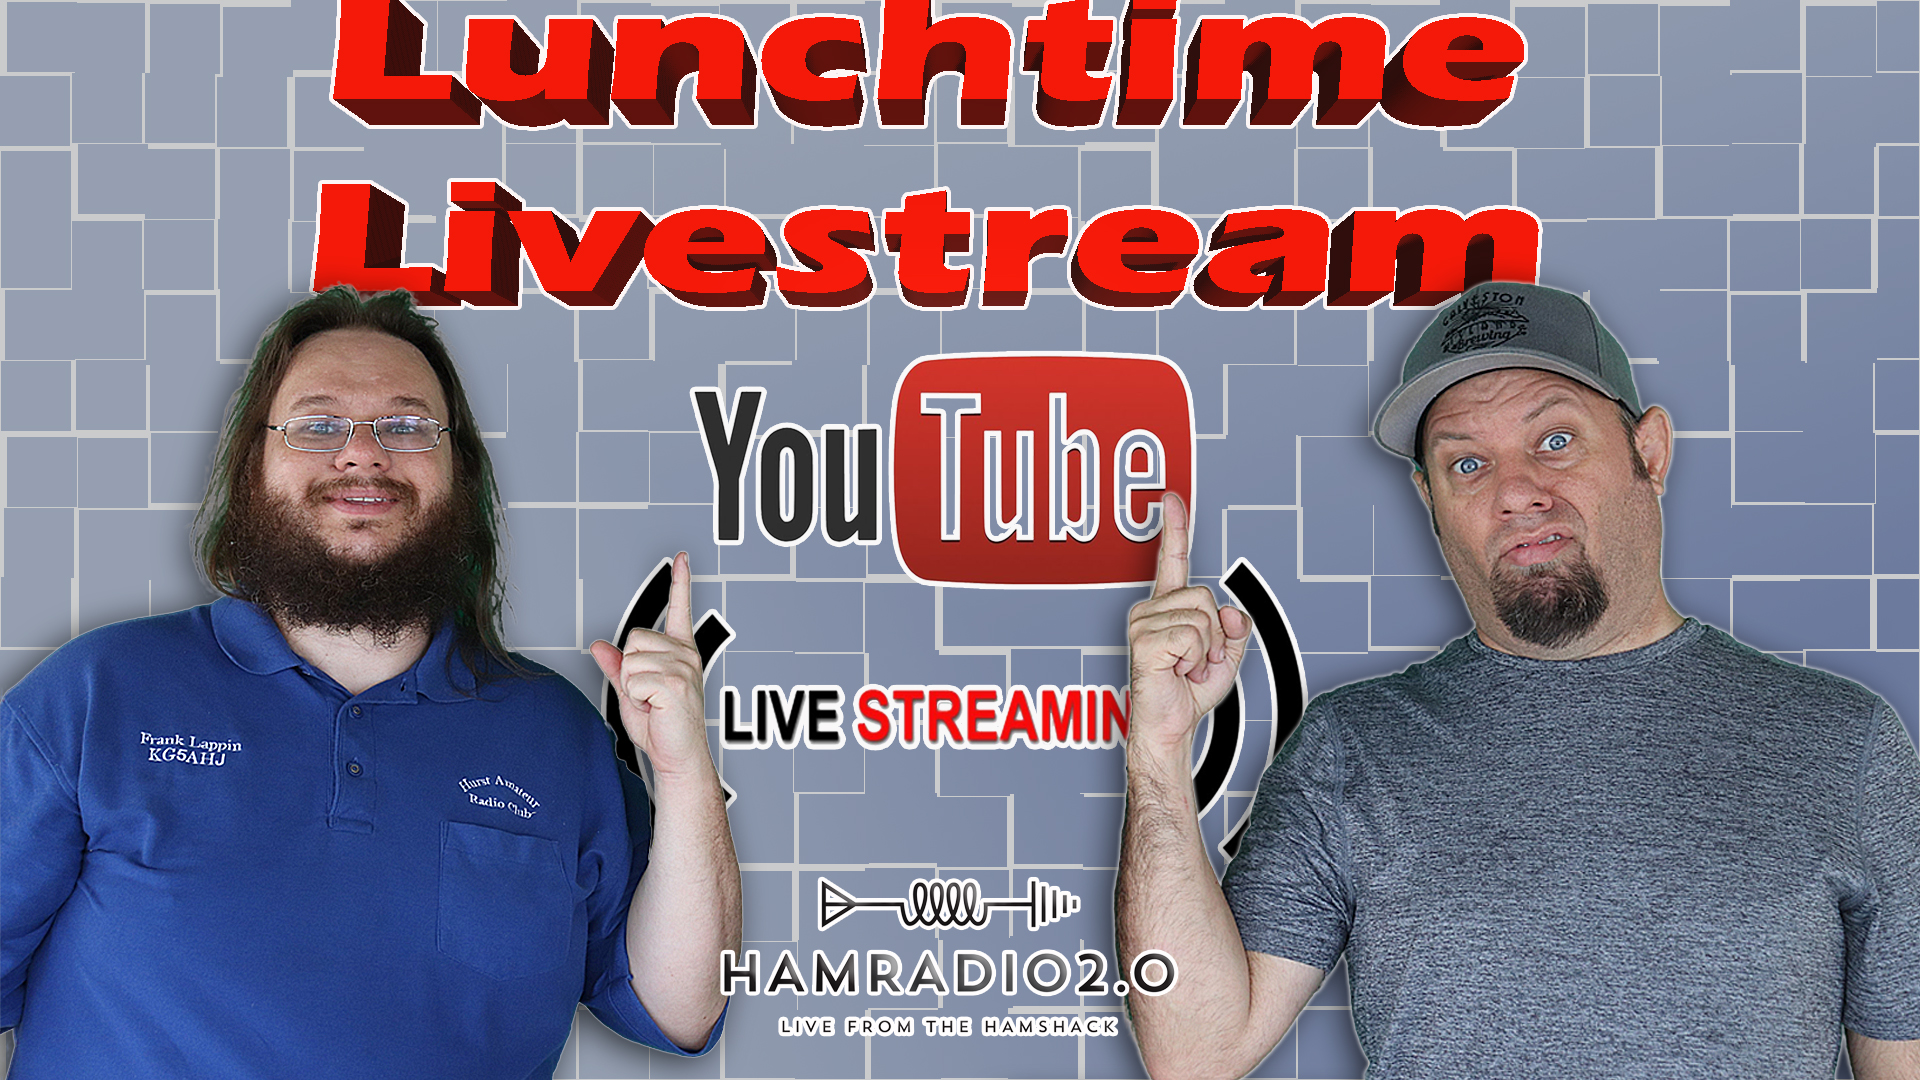 Episode 406: Lunchtime Livestream with Ham Radio 2.0 | July 4th Weekend!